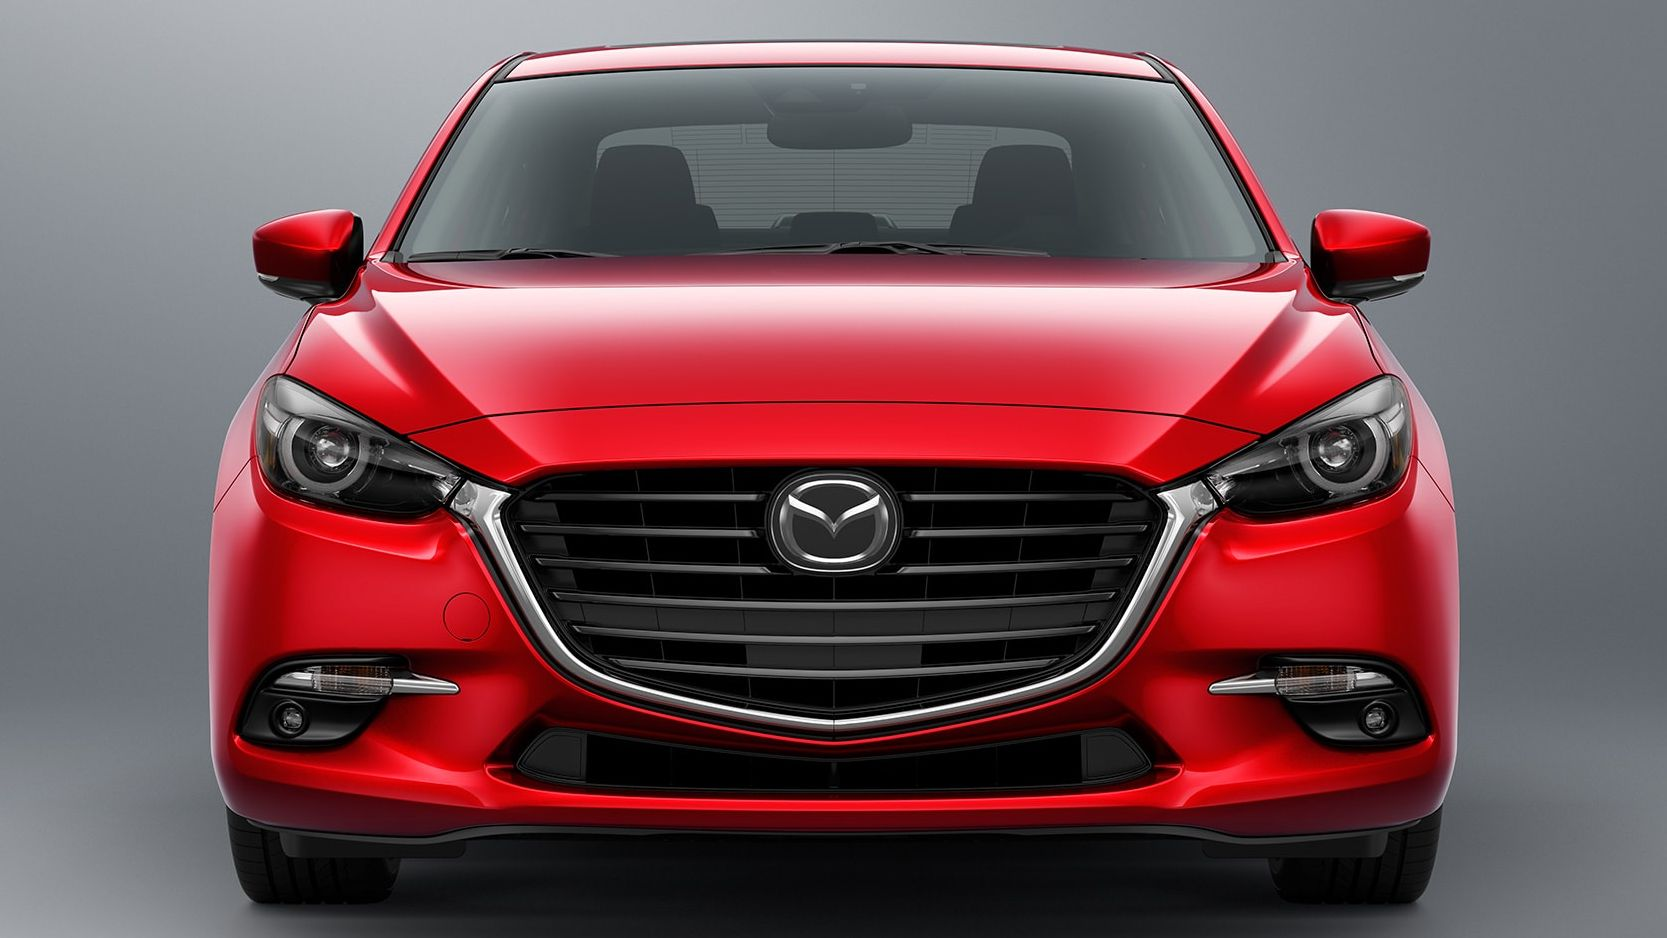 Mazda 3 Owners Manual: Windshield Washer